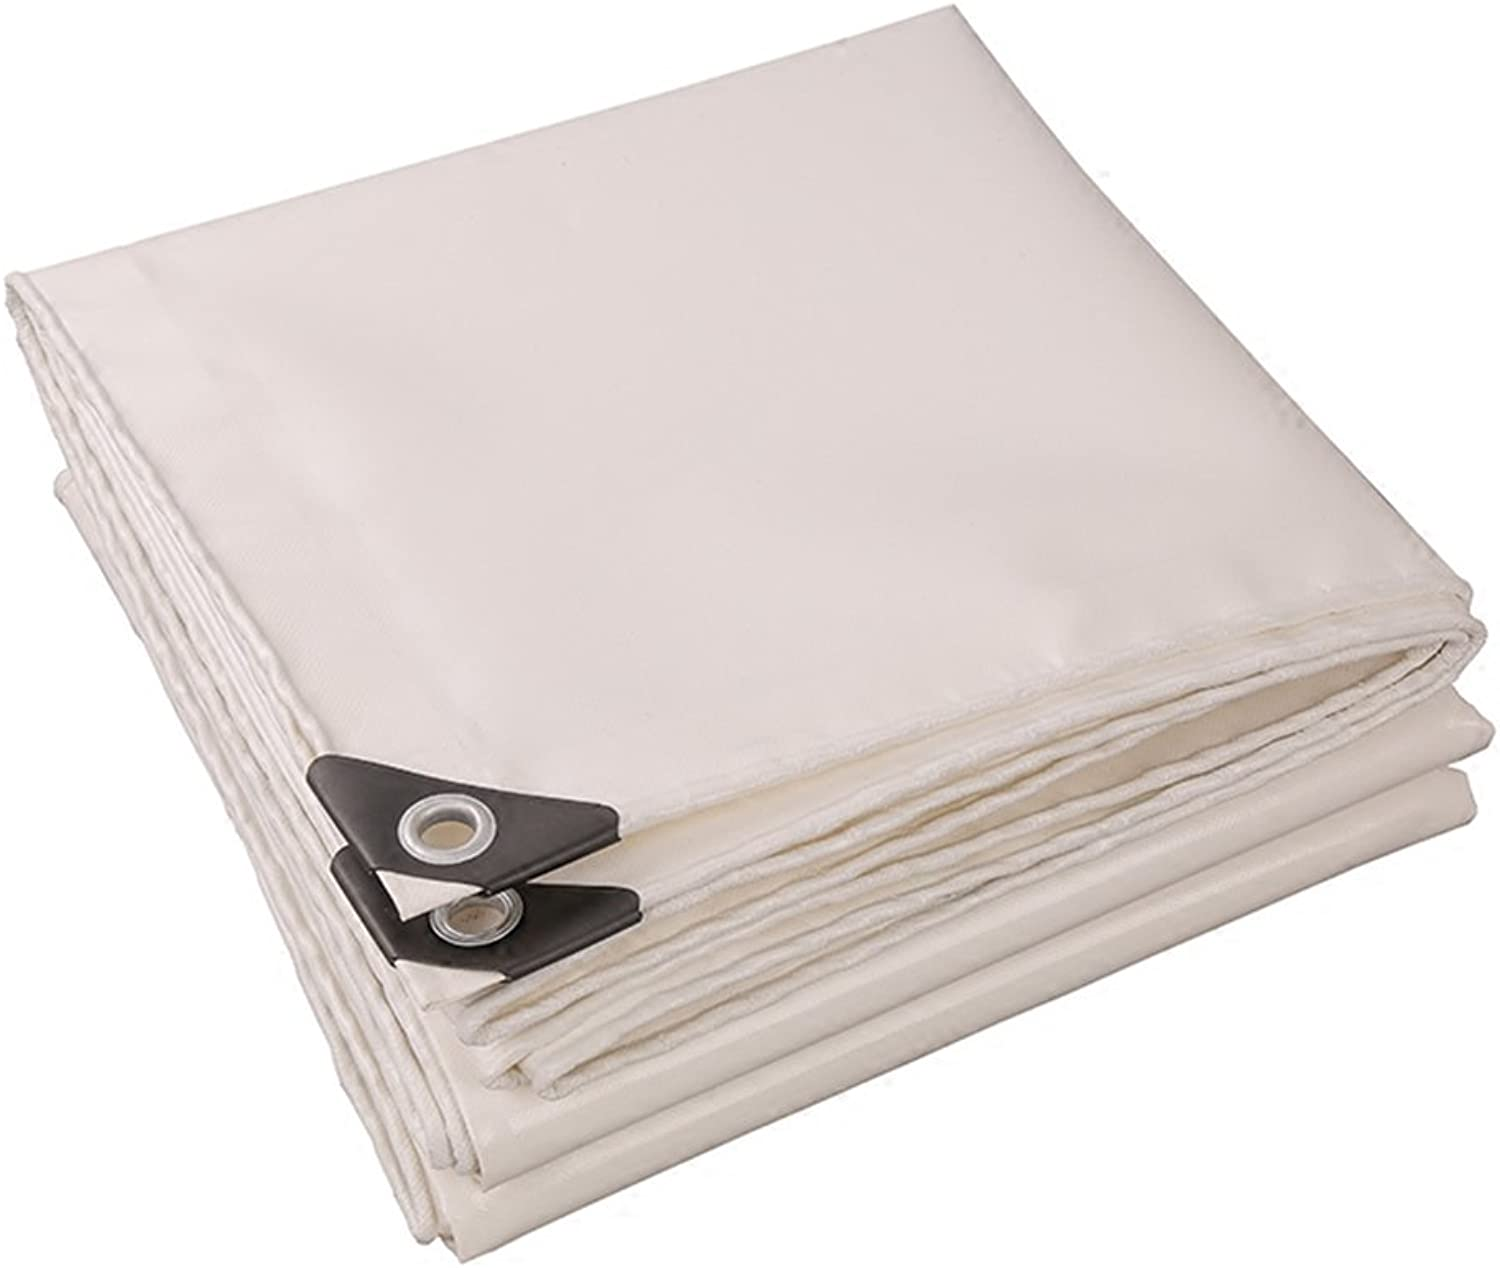 CHAOXIANG Tarpaulin Sheet Foldable Thicken Double-Sided Waterproof Sun Predection Cold-Resistant Wear-Resistant Anti-Corrosion Dust-Proof Lightweight PVC White, 520g m2, Thickness 0.45mm, 19 Sizes